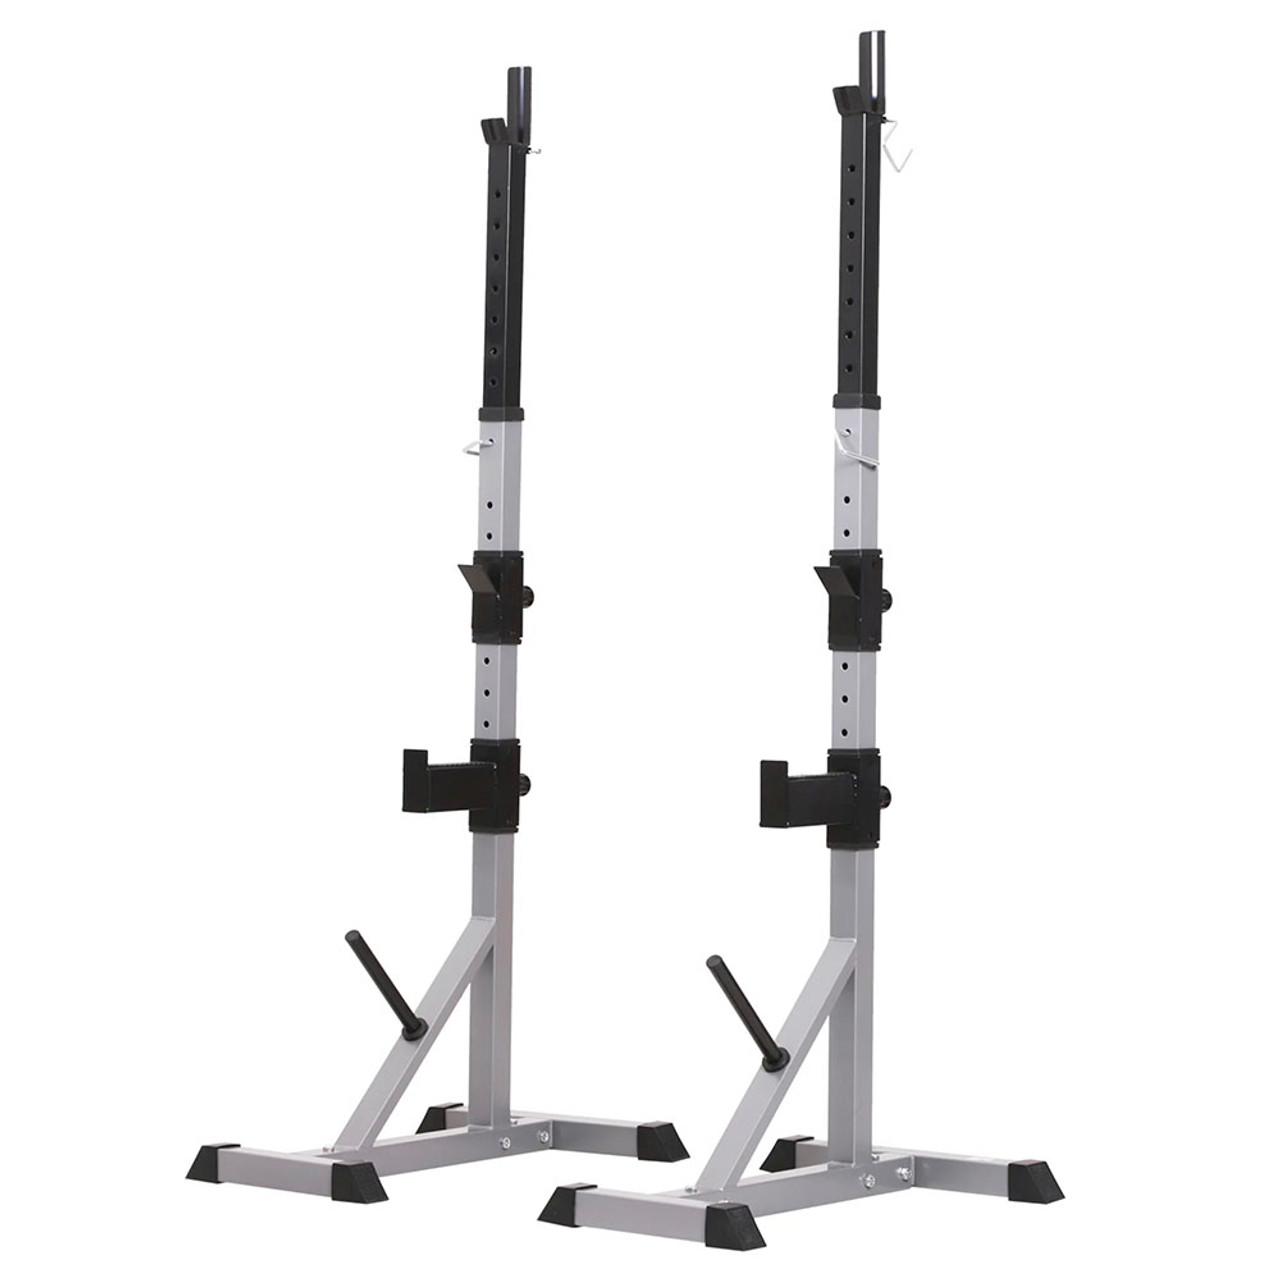 Adjustable Barbell Squat and Bench Press Rack! .99 (REG 9.99) + Free Shipping at Until Gone!